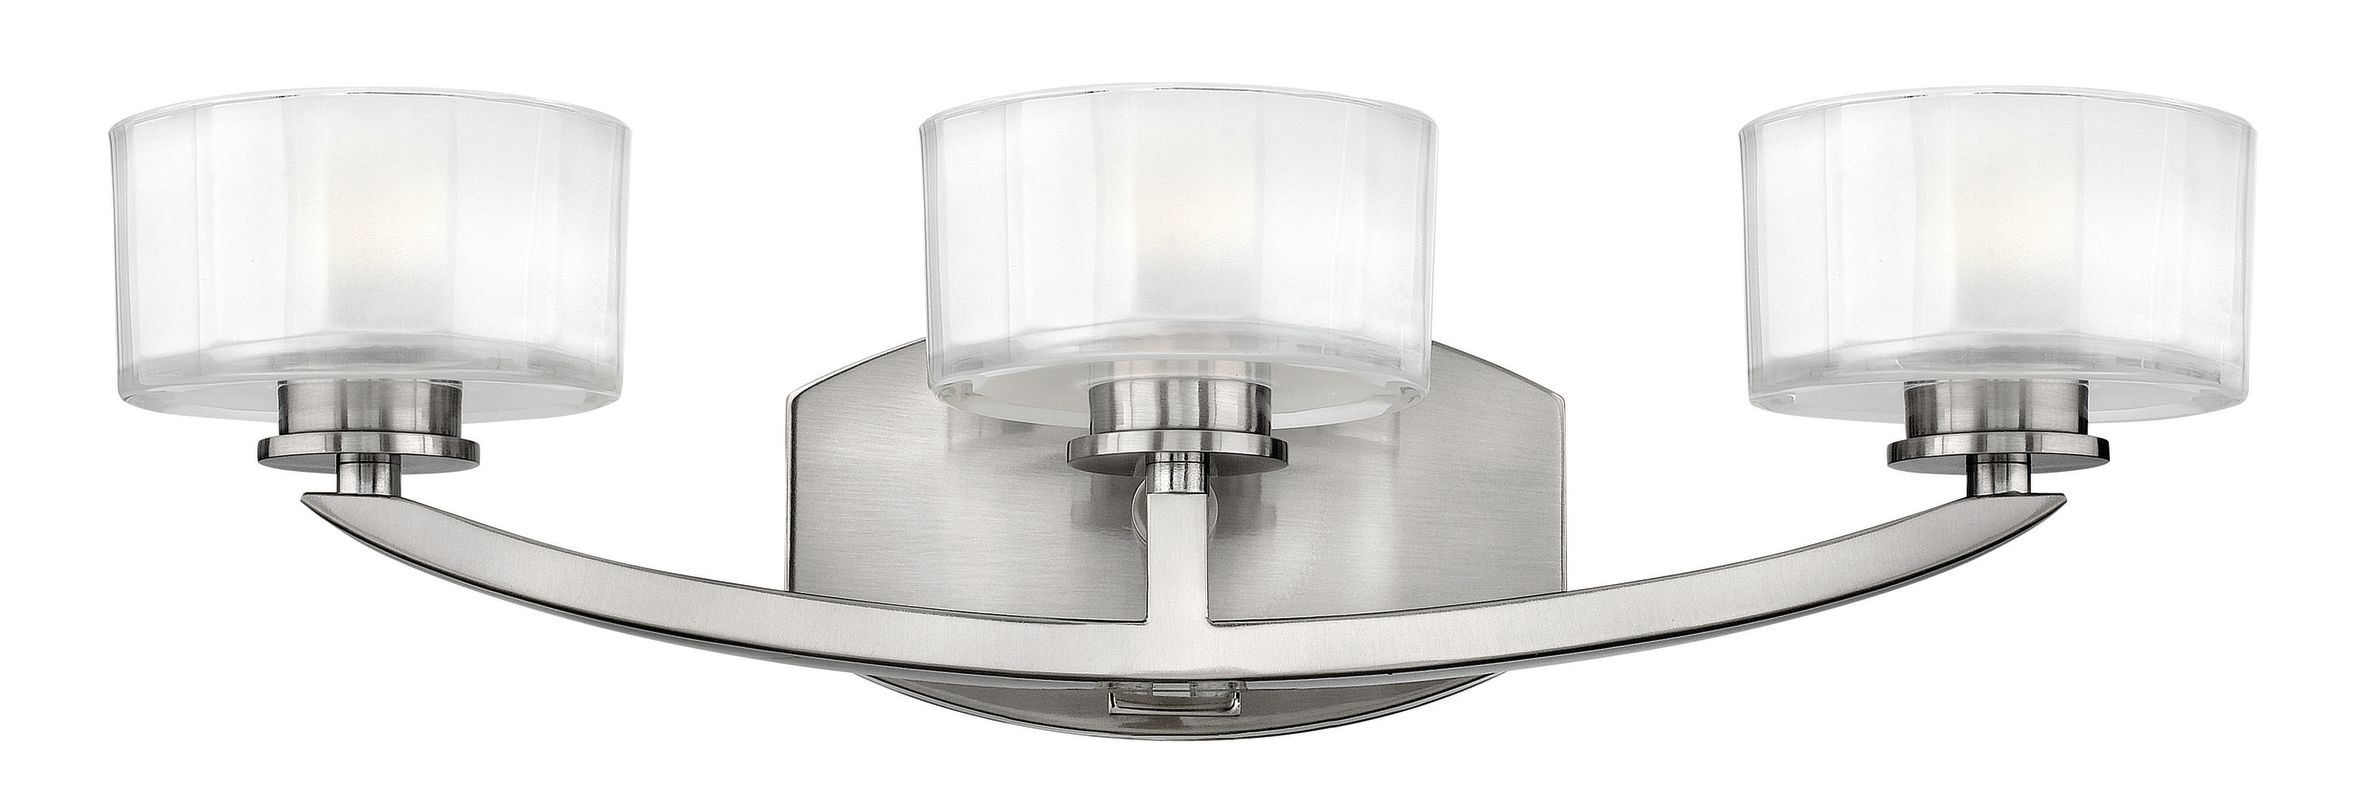 "Progress Lighting Rizu Collection 3 Light Brushed Nickel: Hinkley Lighting 5593BN Brushed Nickel 3 Light 21"" Width"